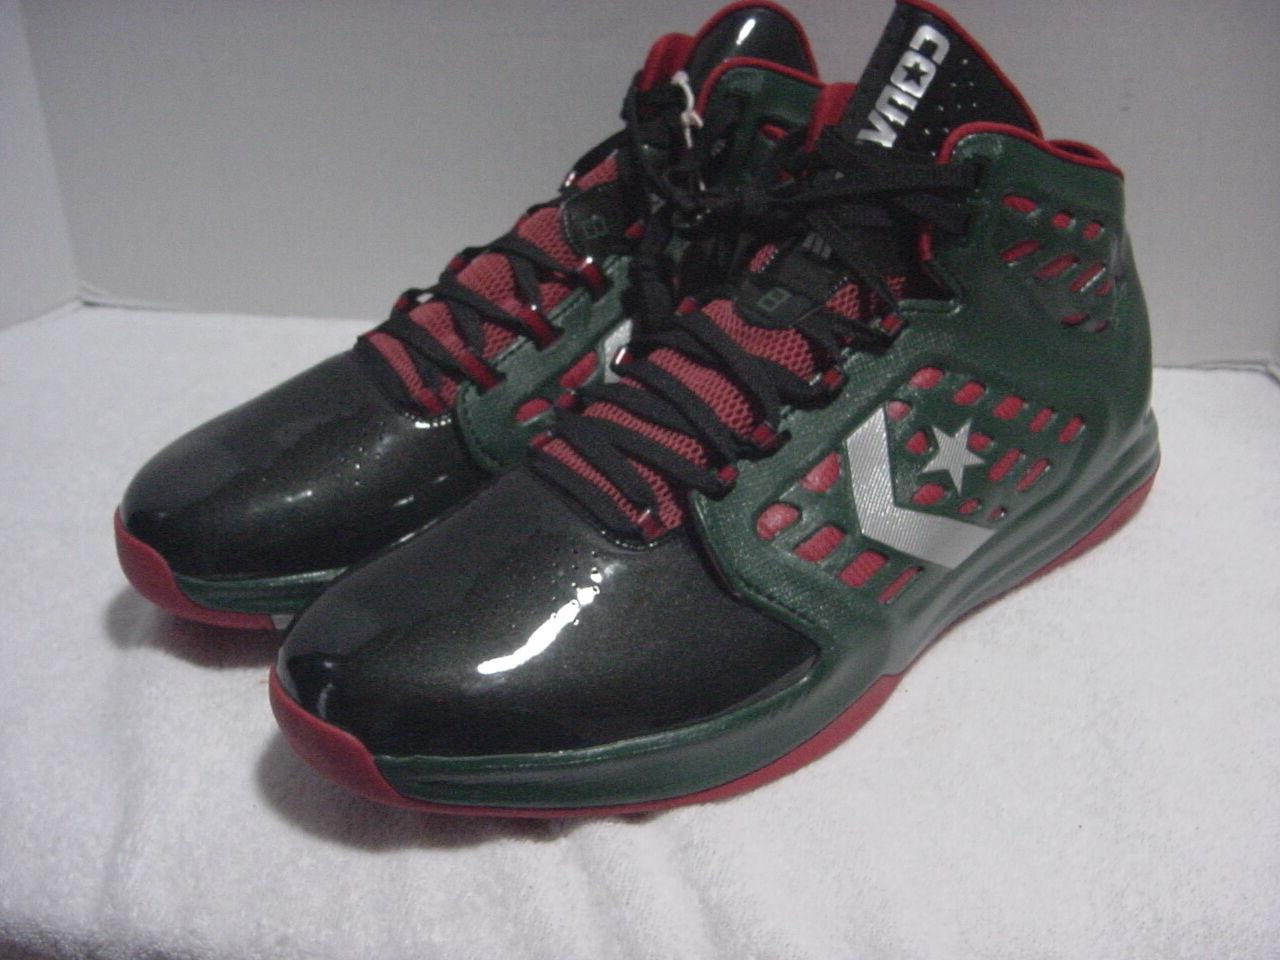 contain men s basketball shoes size 18